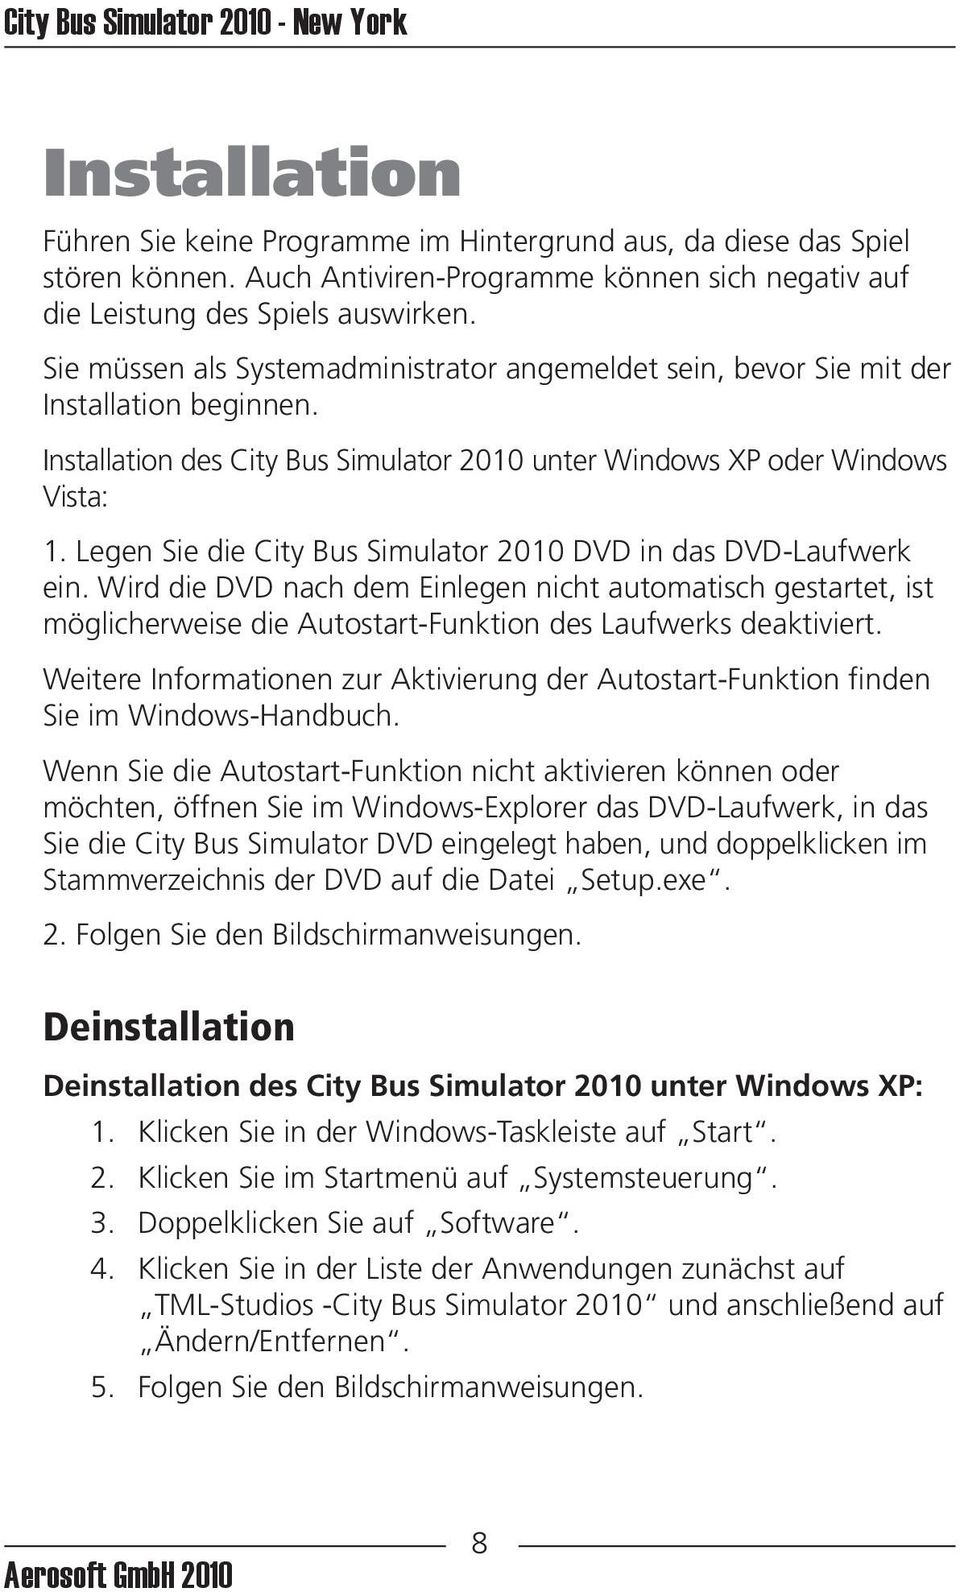 Installation des City Bus Simulator 2010 unter Windows XP oder Windows Vista: 1. Legen Sie die City Bus Simulator 2010 DVD in das DVD-Laufwerk ein.